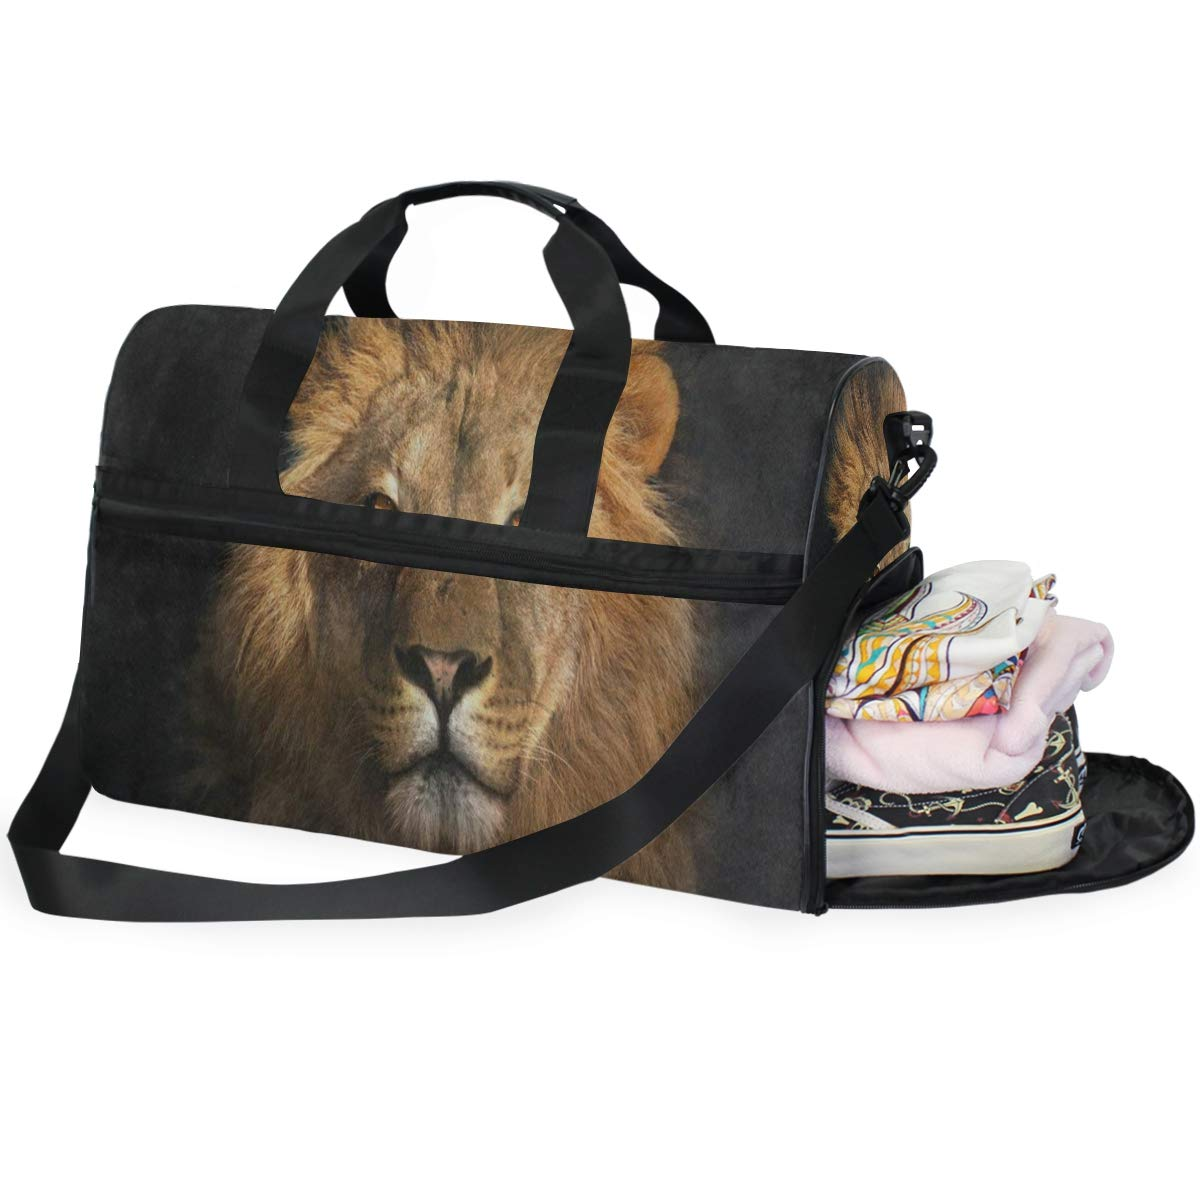 Travel Tote Luggage Weekender Duffle Bag Brown King Lion Animal Large Canvas shoulder bag with Shoe Compartment